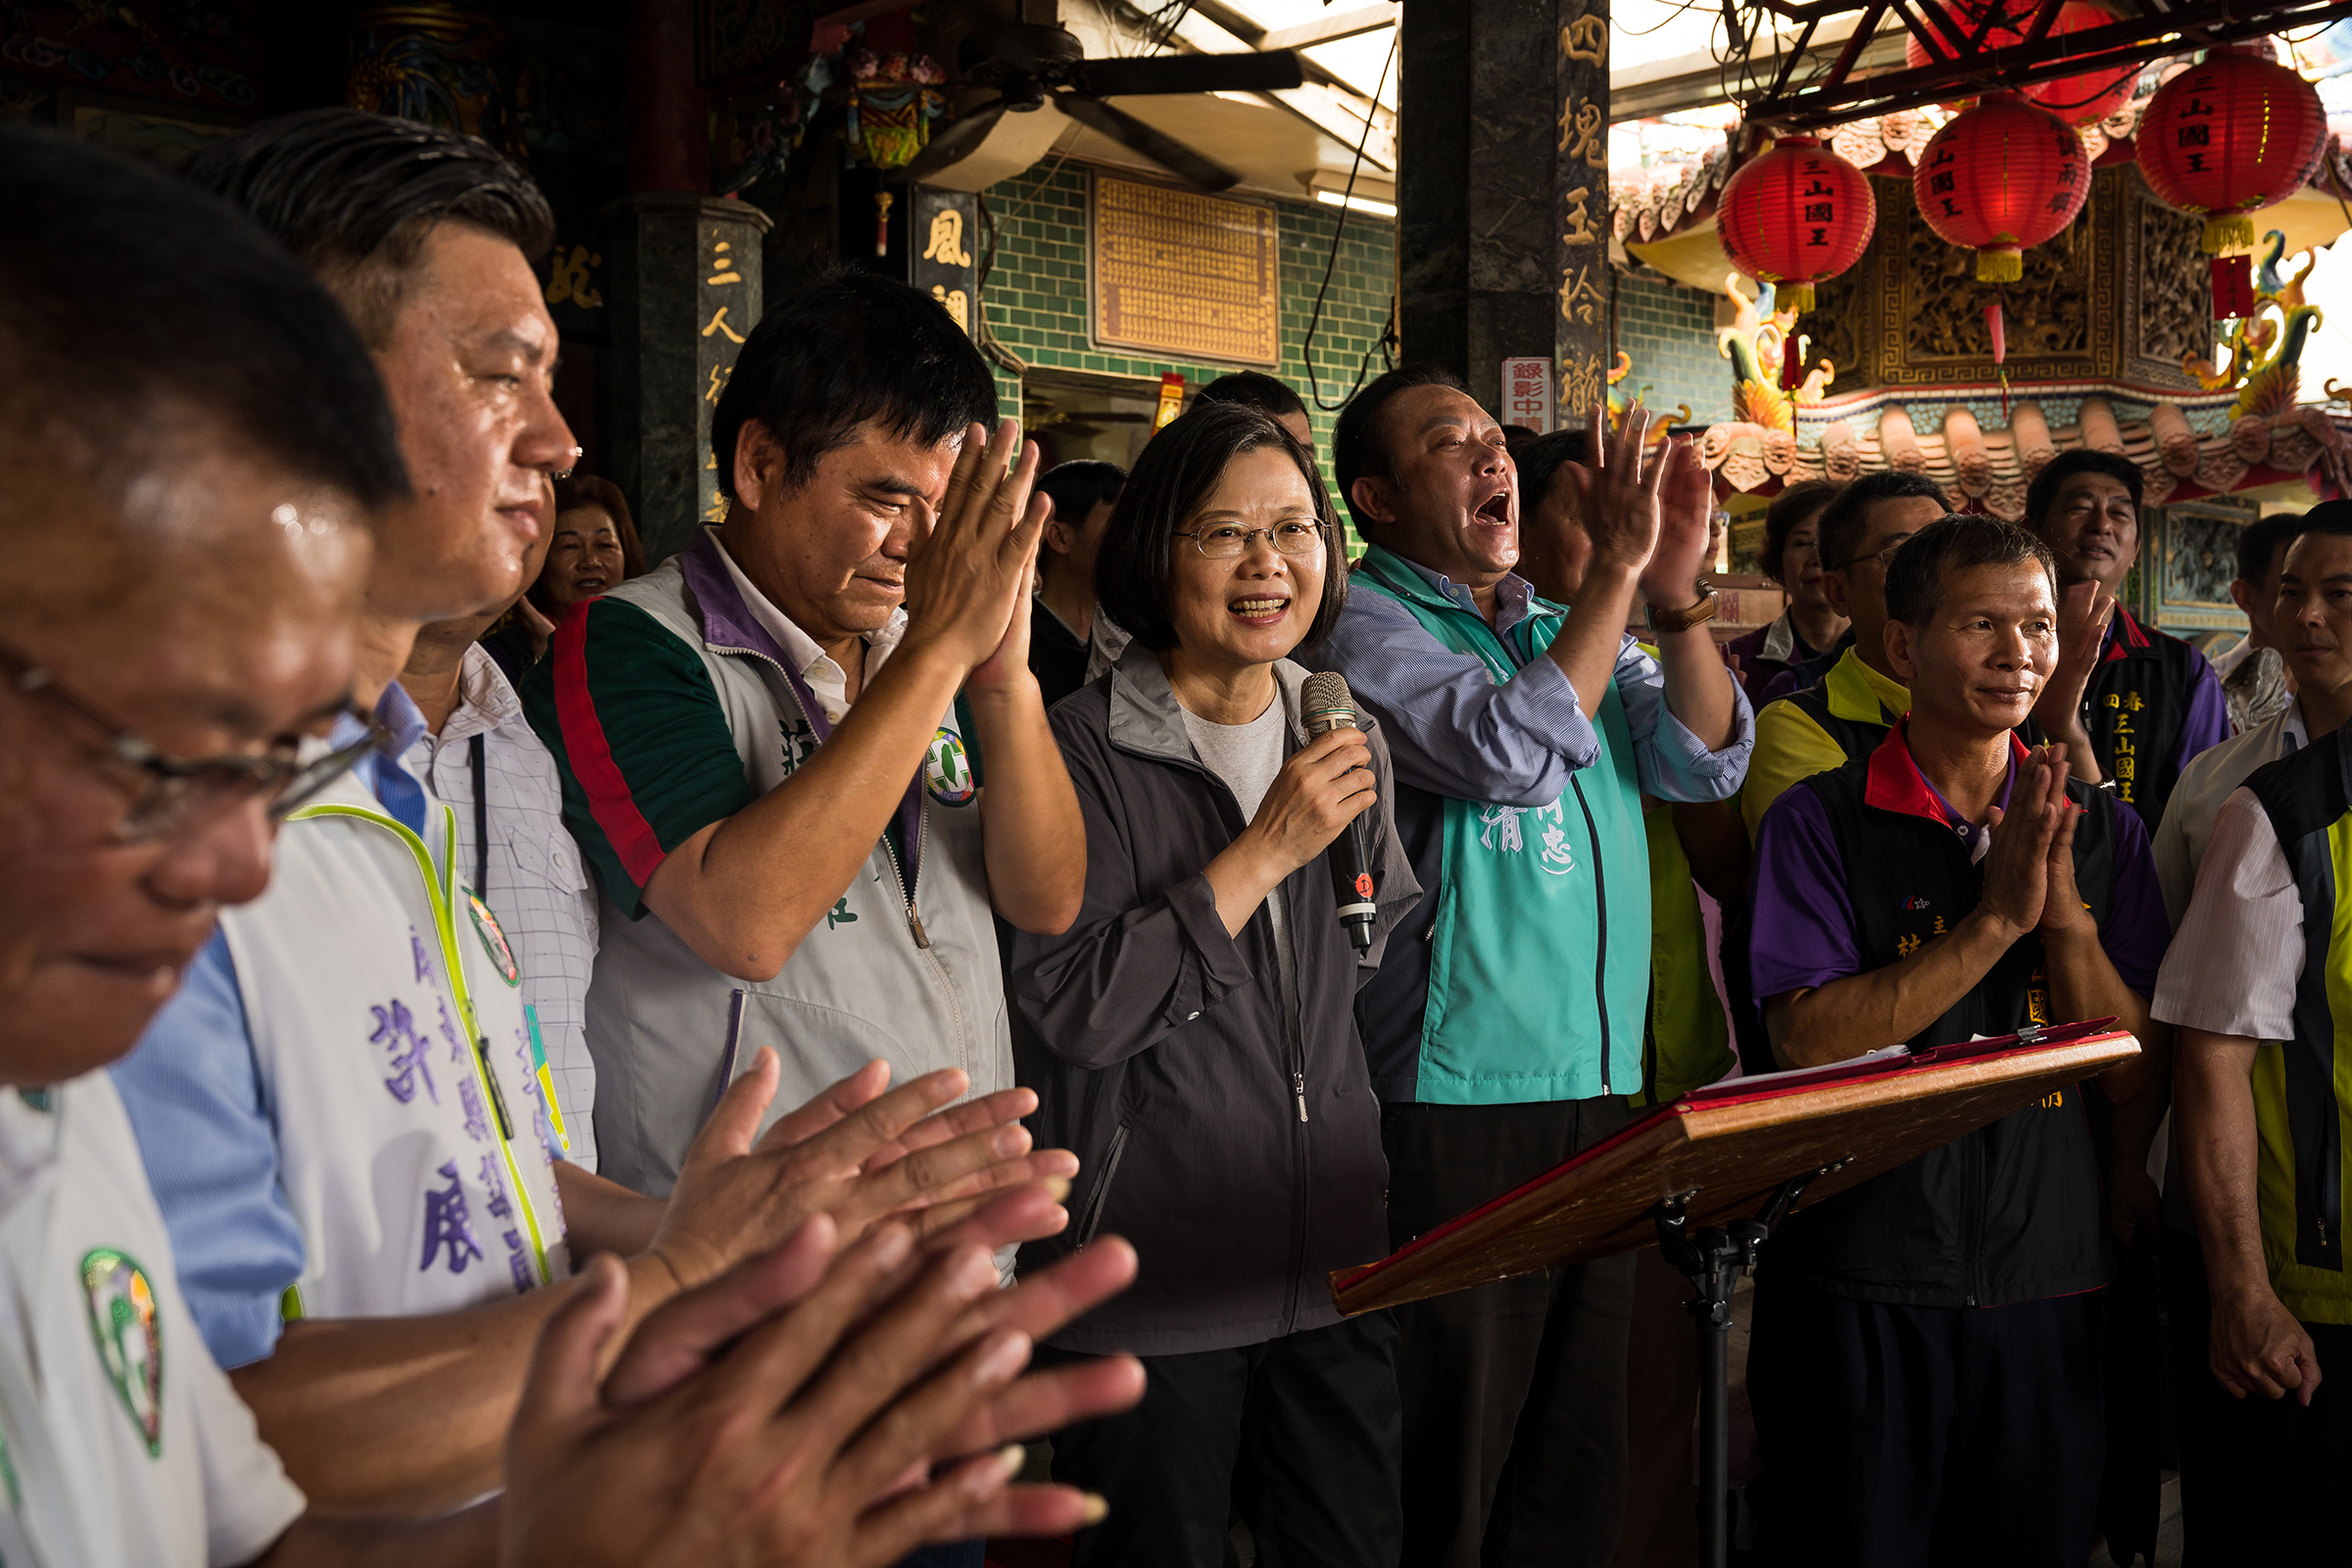 Tsai has been determined to take her message directly to voters on the campaign trail.